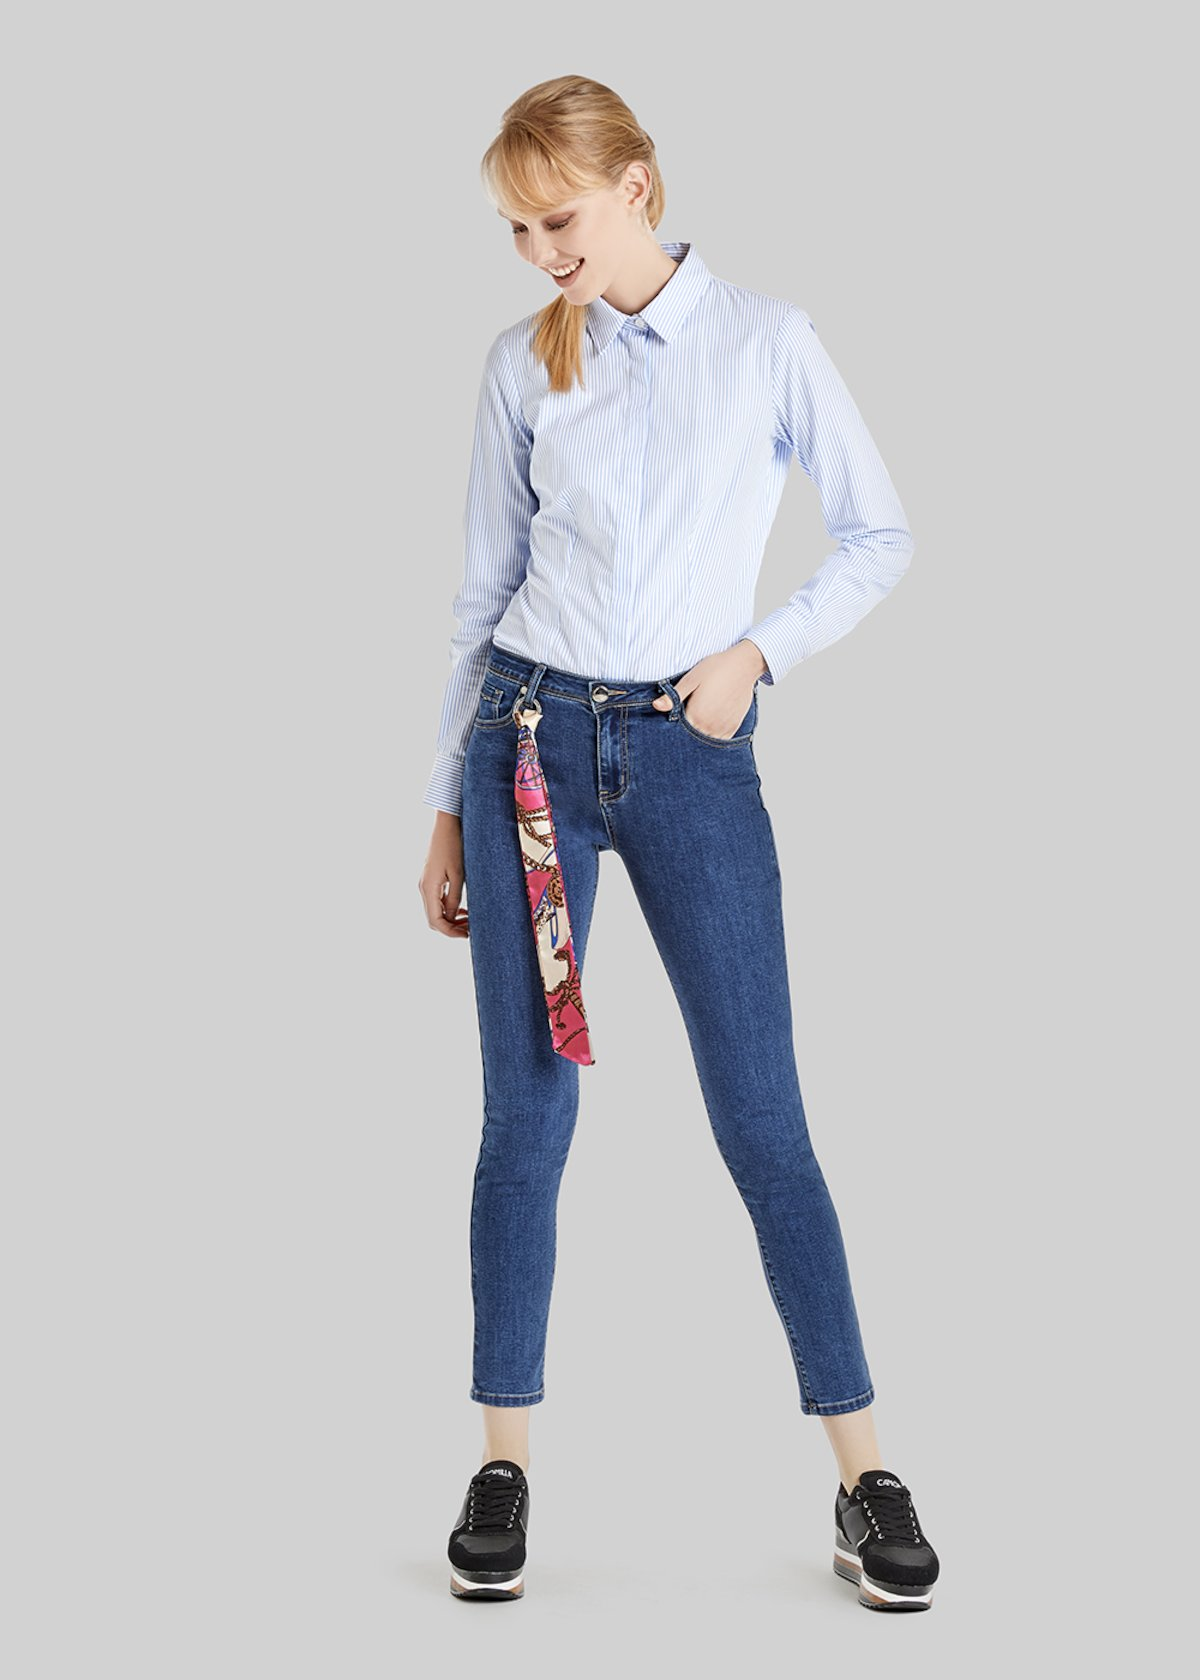 Daisy denim trousers with printed scarf - Denim - Woman - Category image